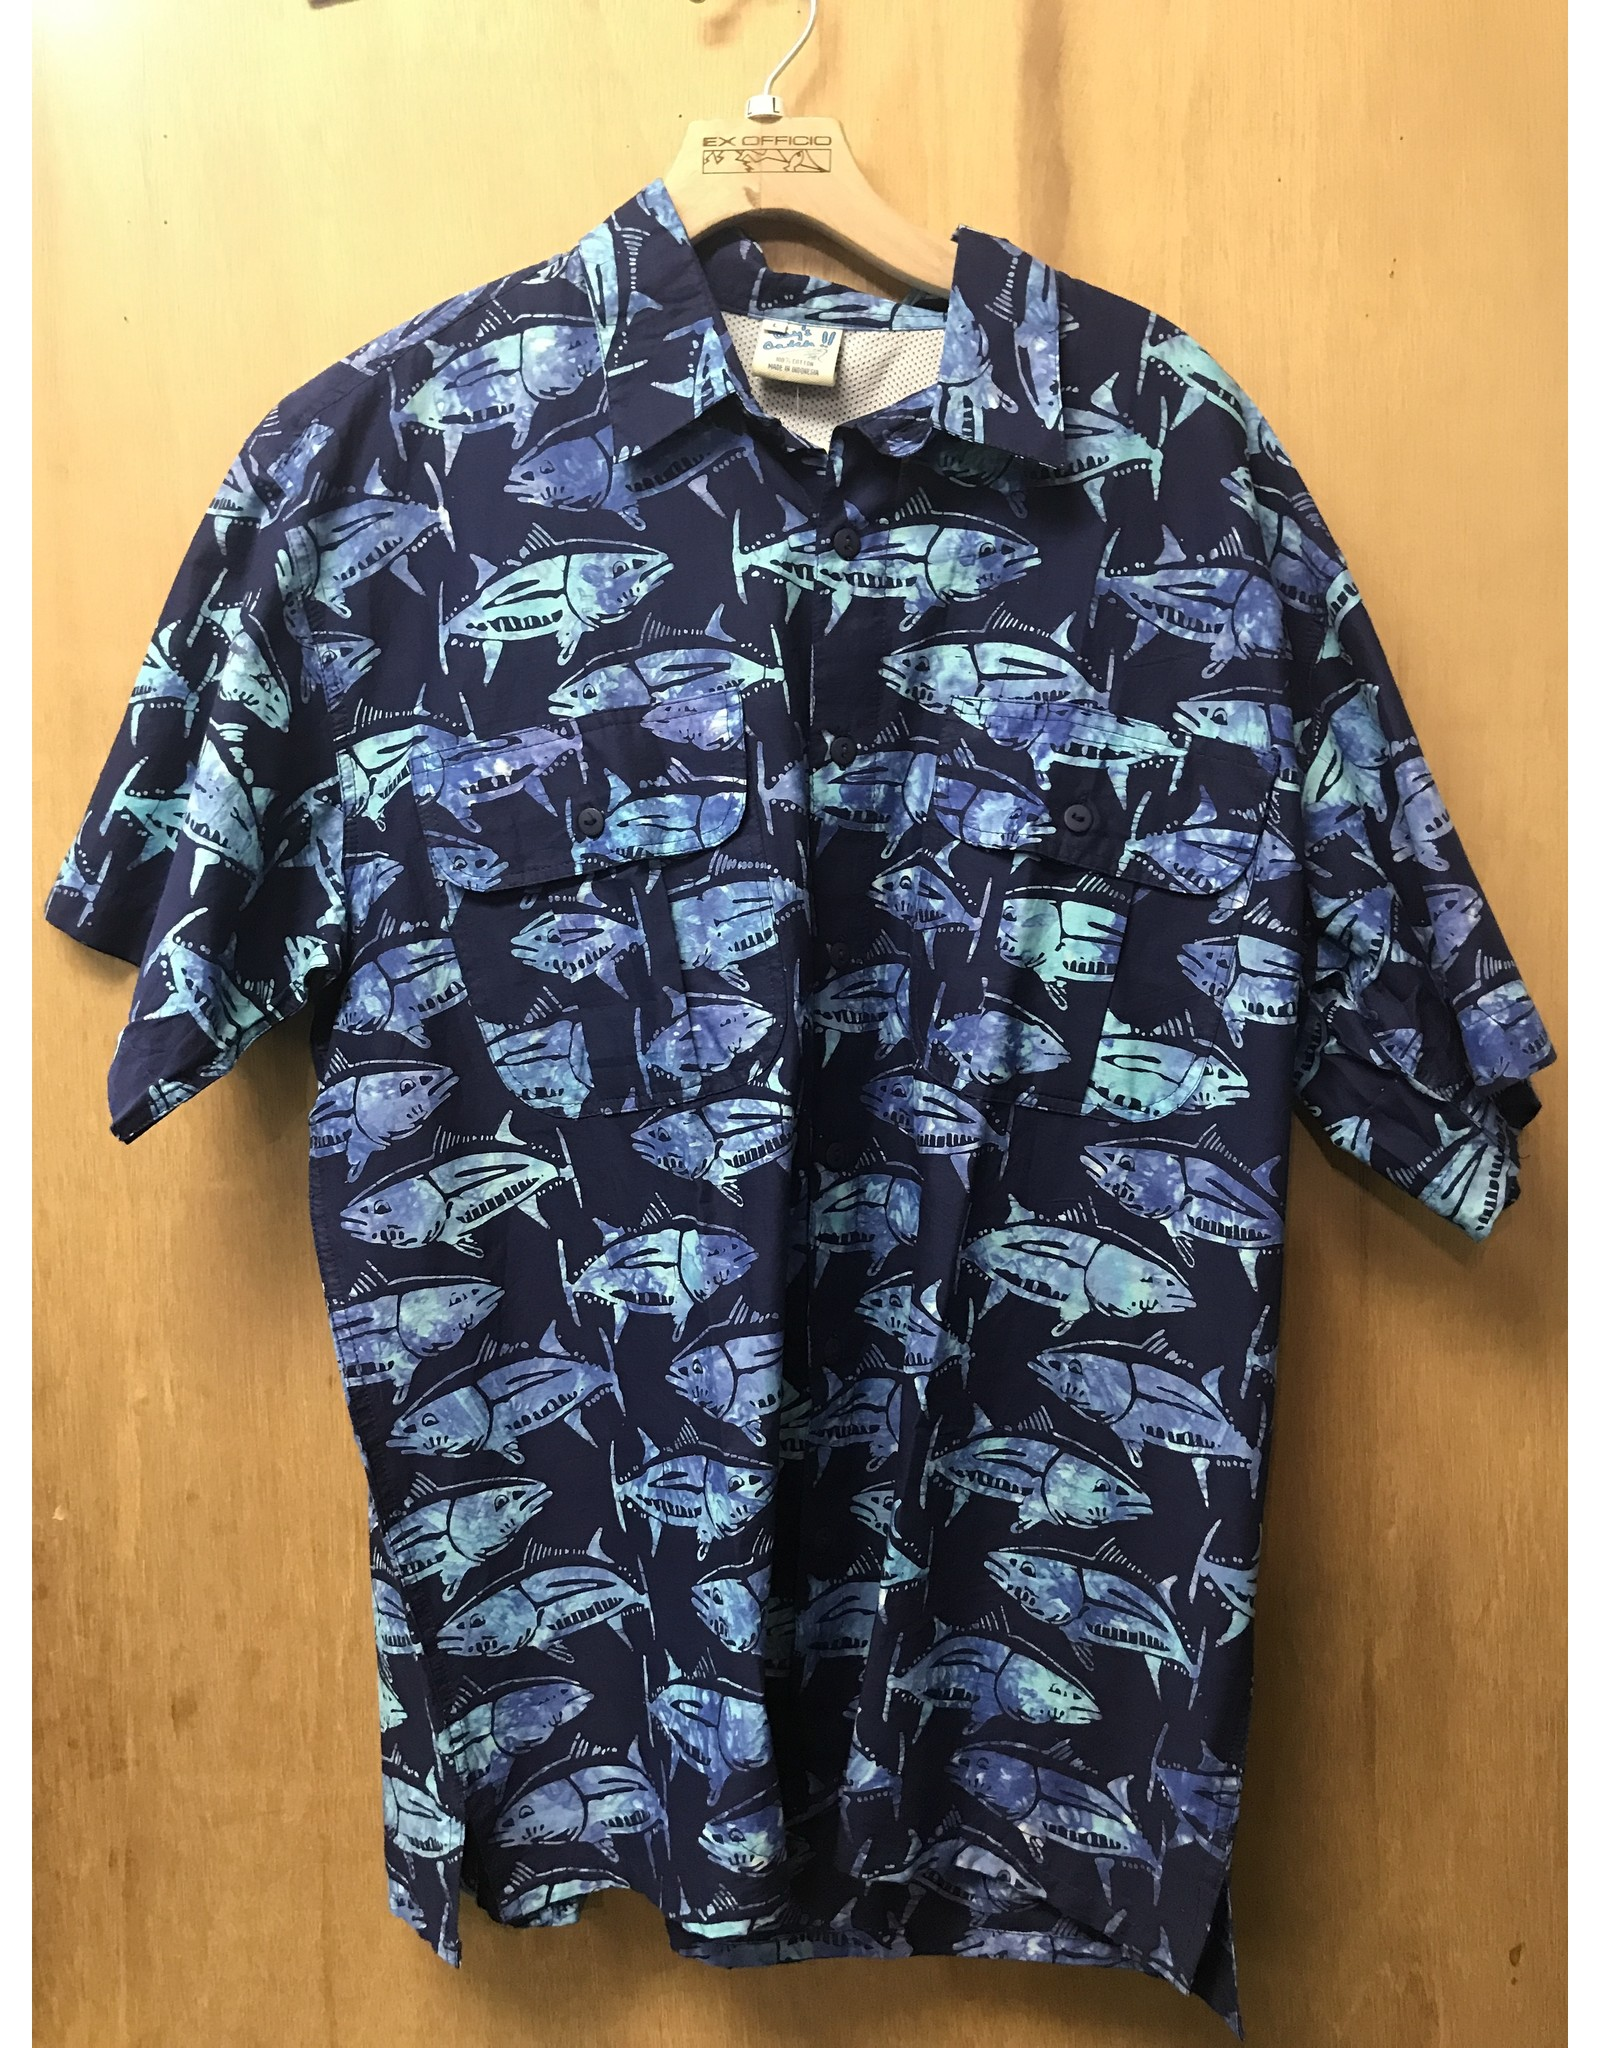 The Day's Catch The Day's Catch - Men's Shirt